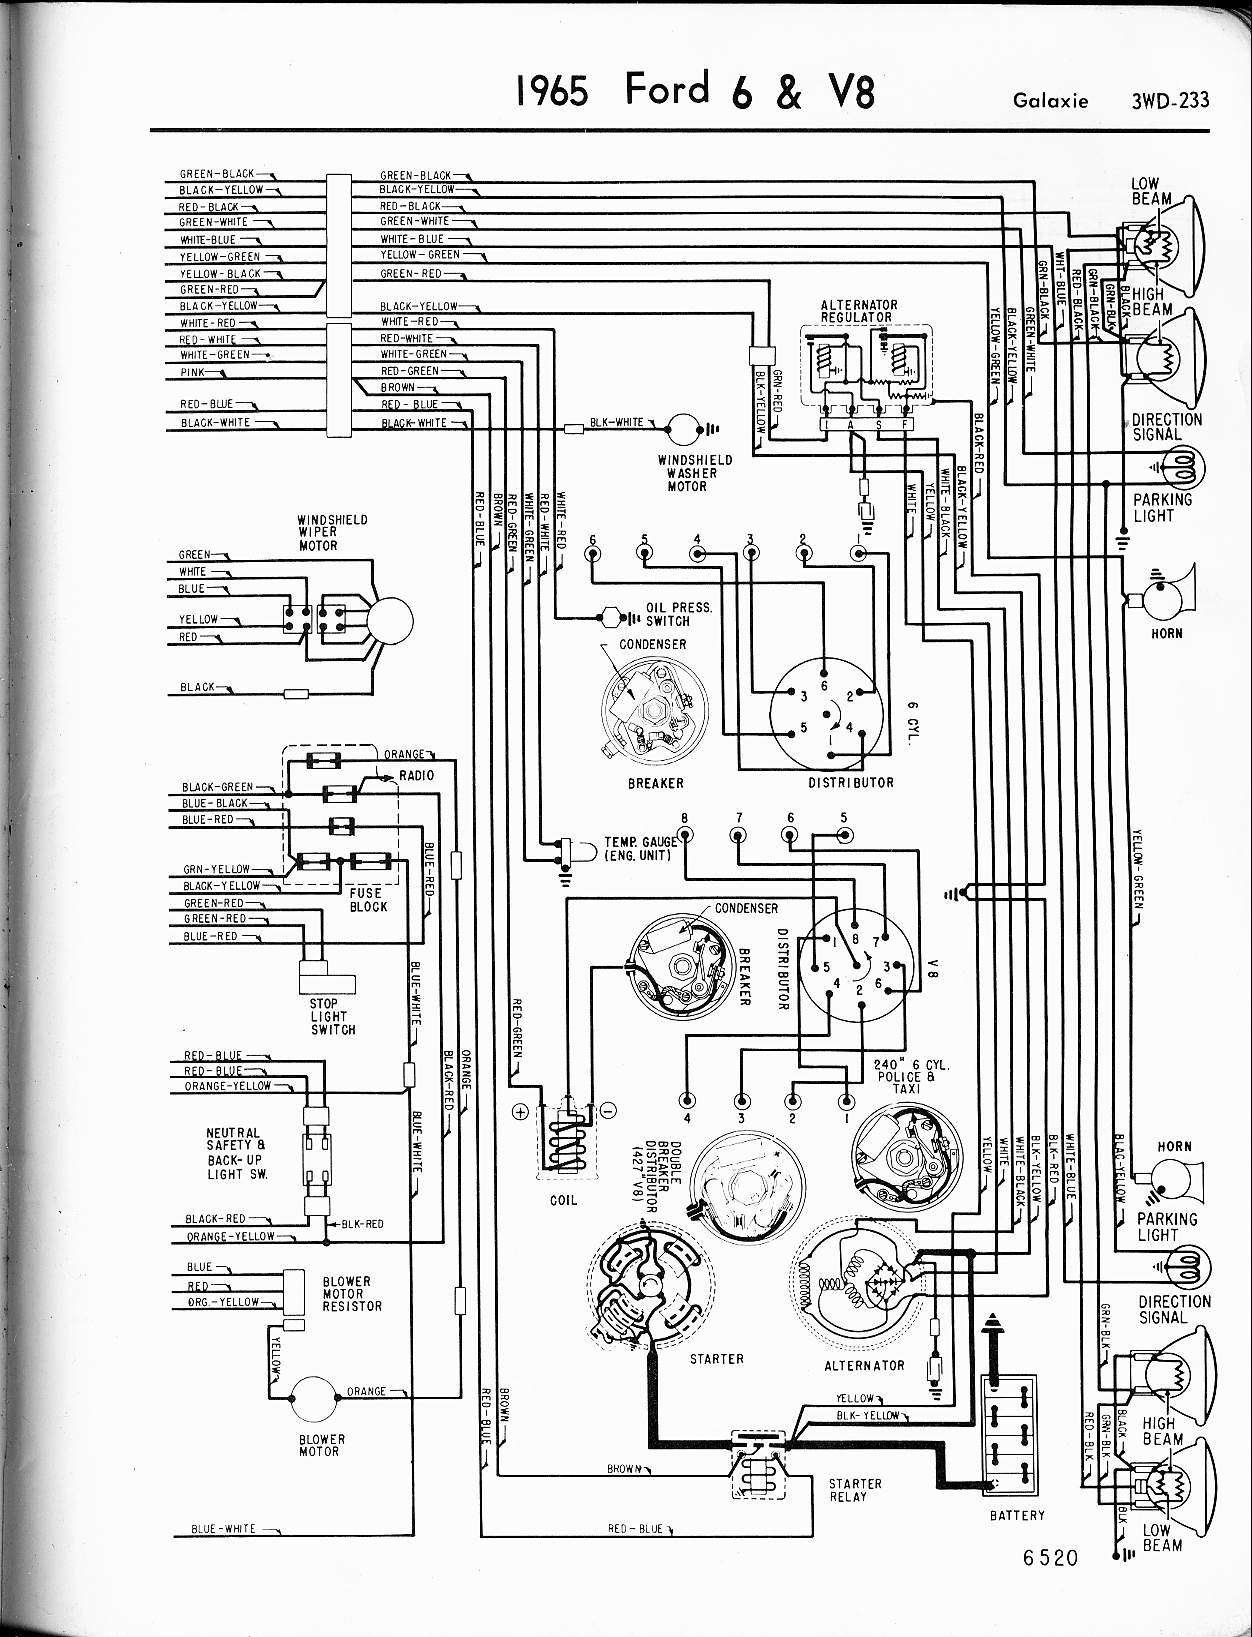 66 galaxie dash wiring diagram designmethodsandprocesses co uk \u2022 1969 Thunderbird Black 1969 thunderbird dash wiring diagram 19 1 derma lift de u2022 rh 19 1 derma lift